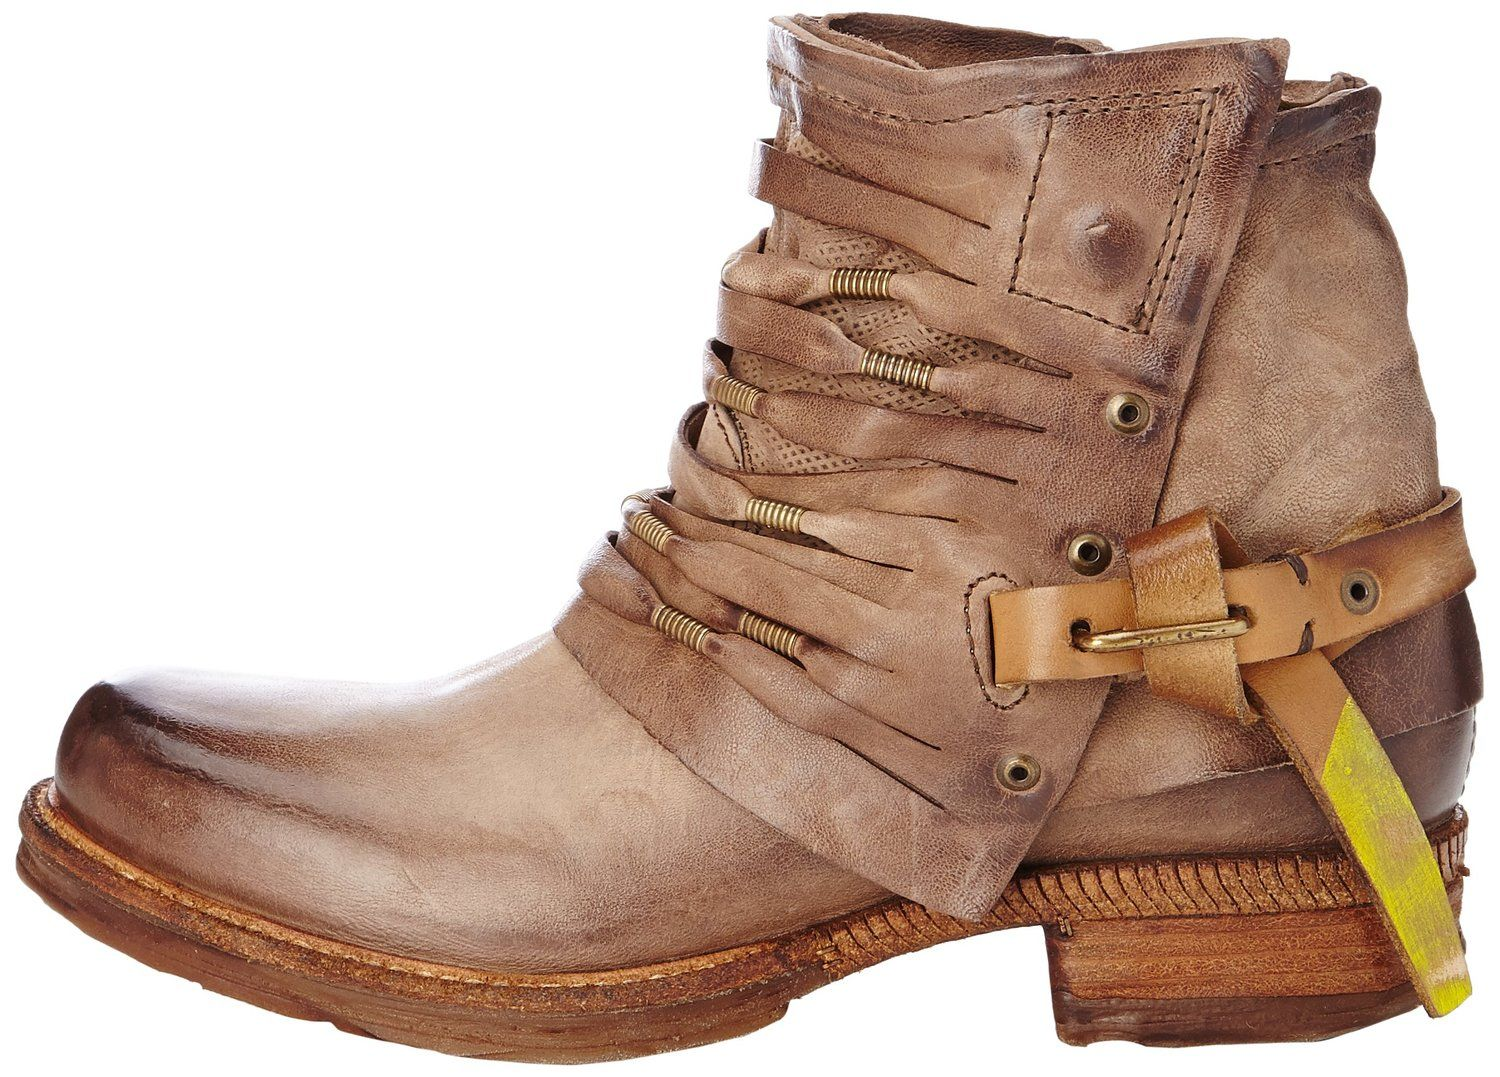 new arrival 2431e 98f14 Airstep AS 98 Saint, Bottes femme - Marron (9900/3534 Rino ...